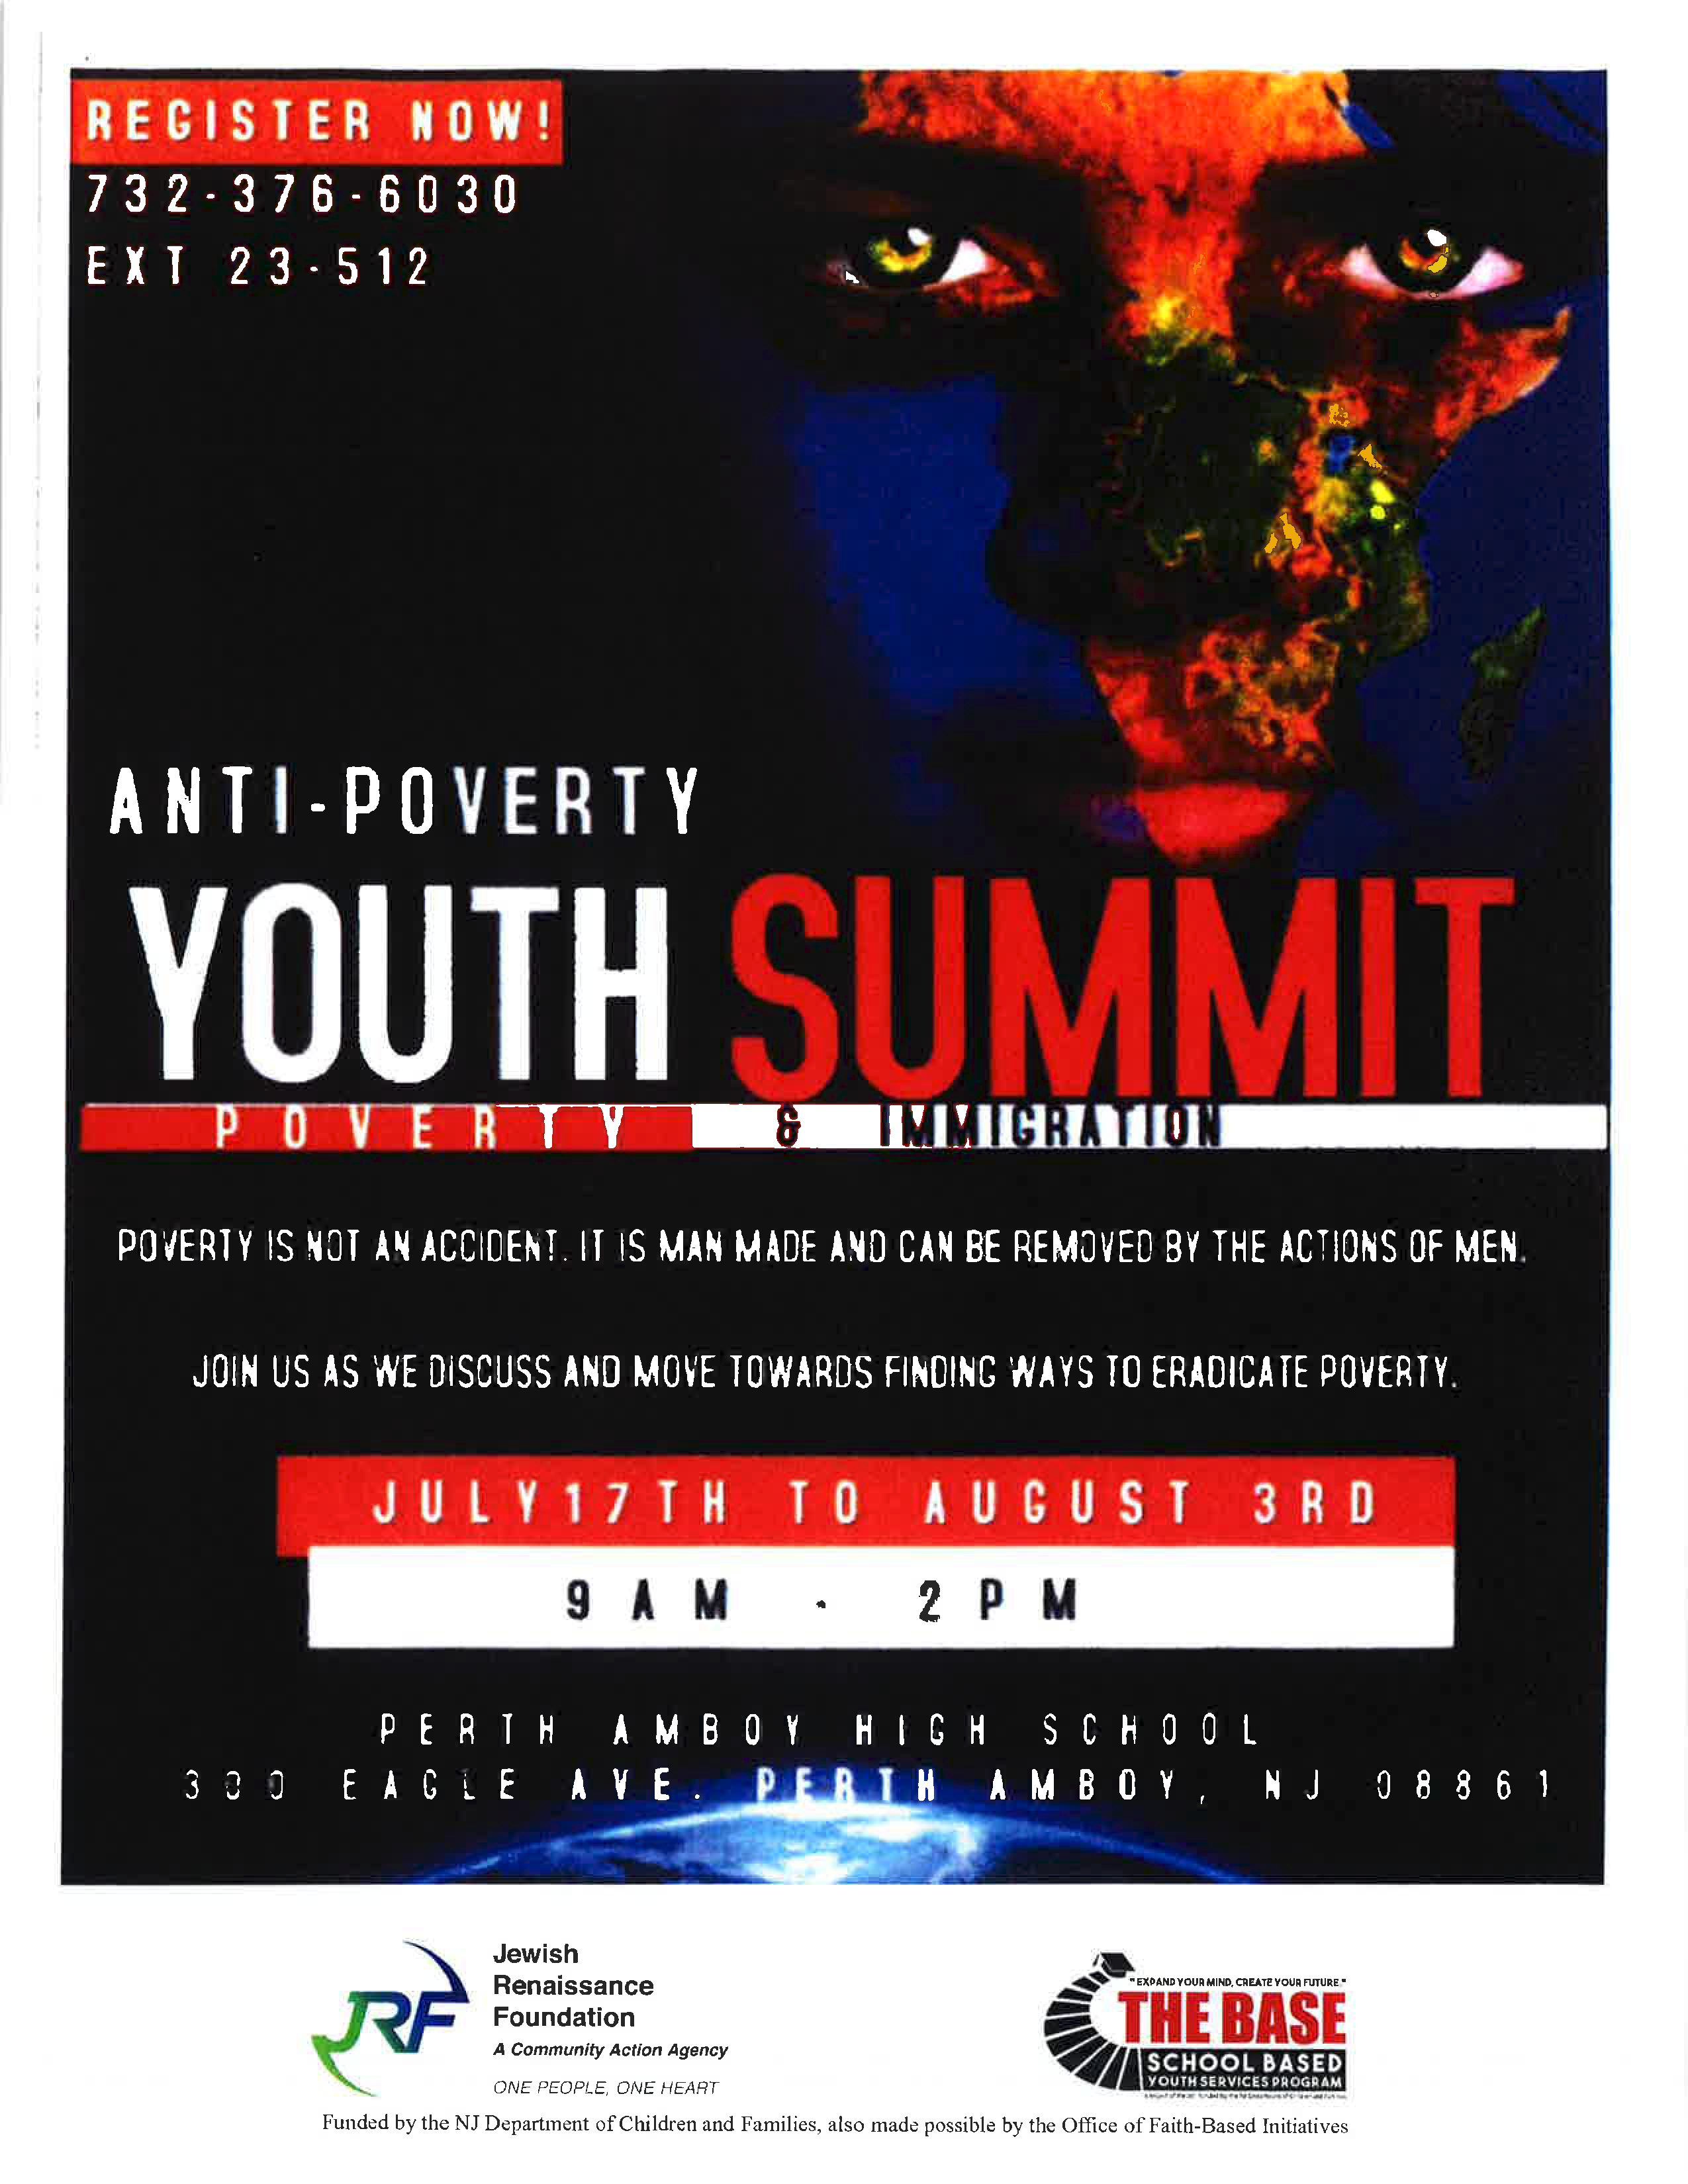 Anti-Poverty Youth Summit